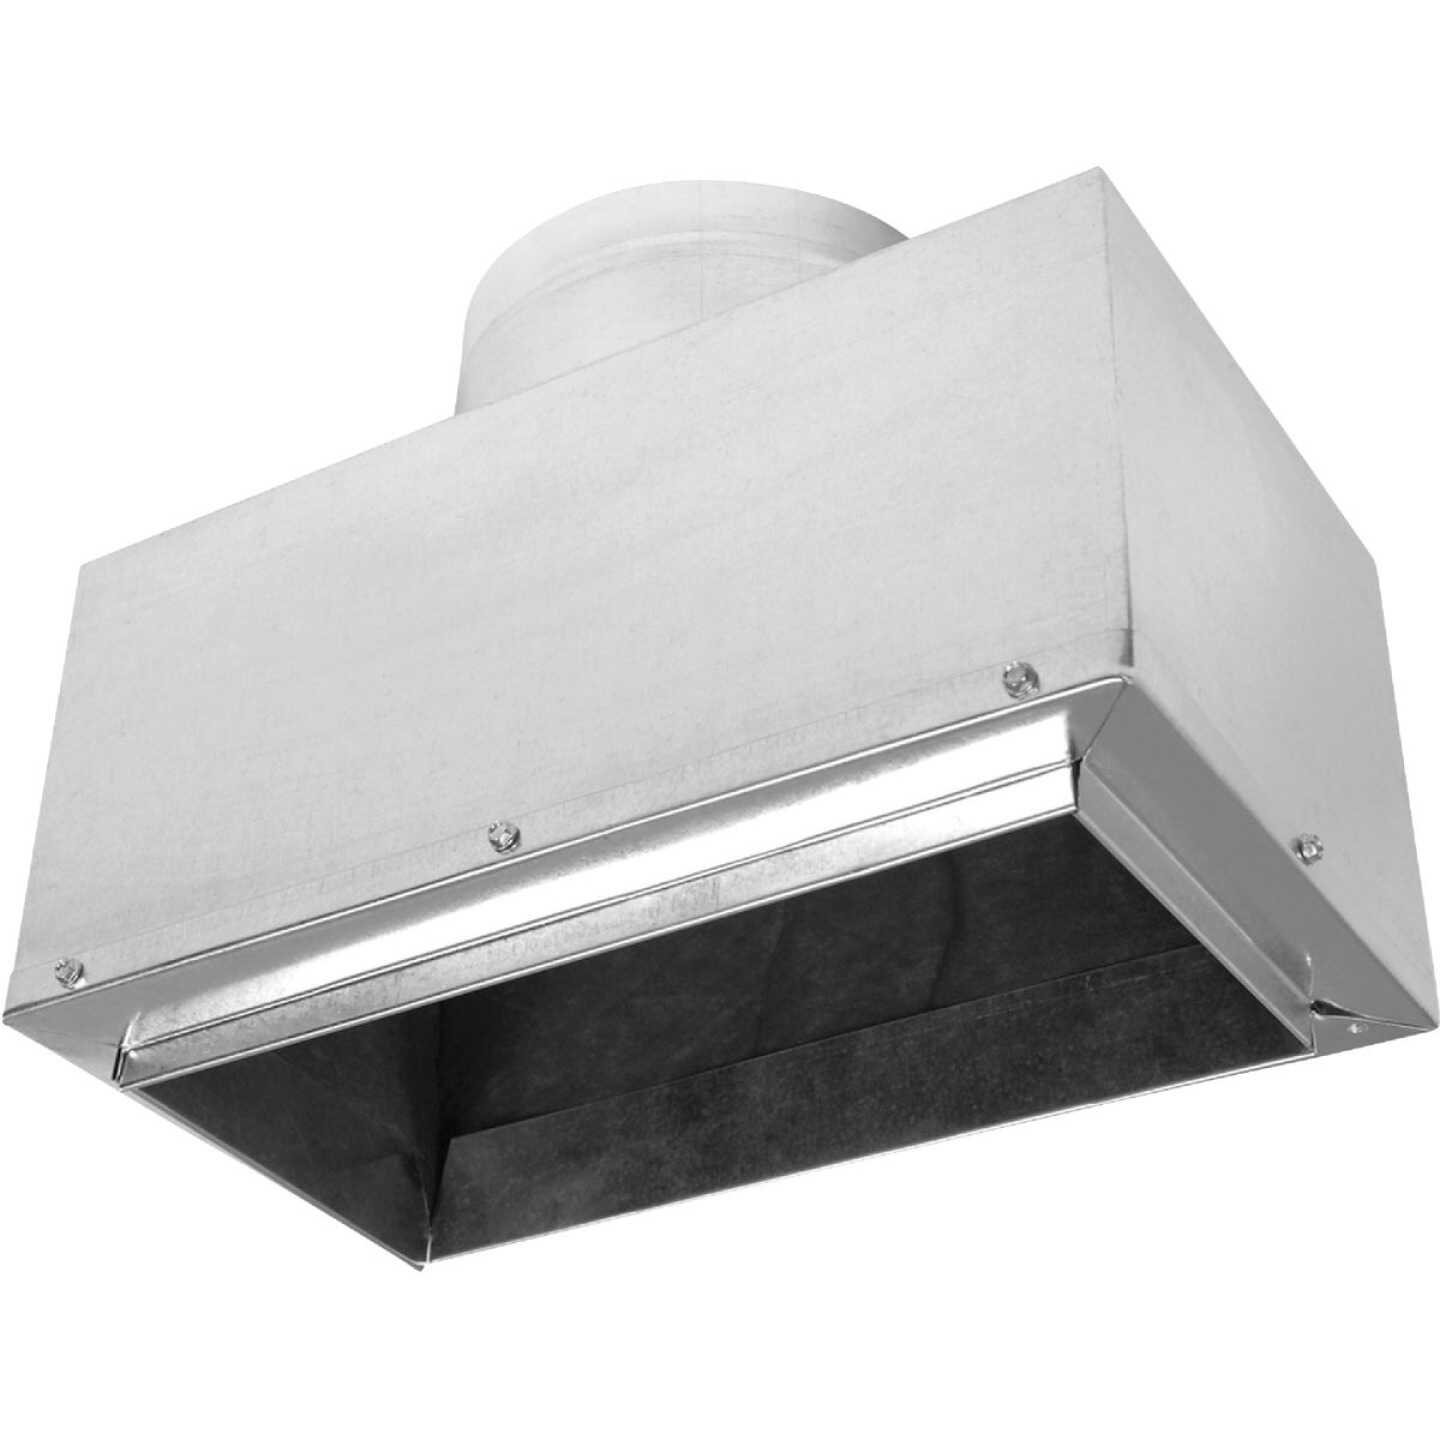 Imperial 12 In. x 6 In. x 6 In. Insulated Register Boot Image 1